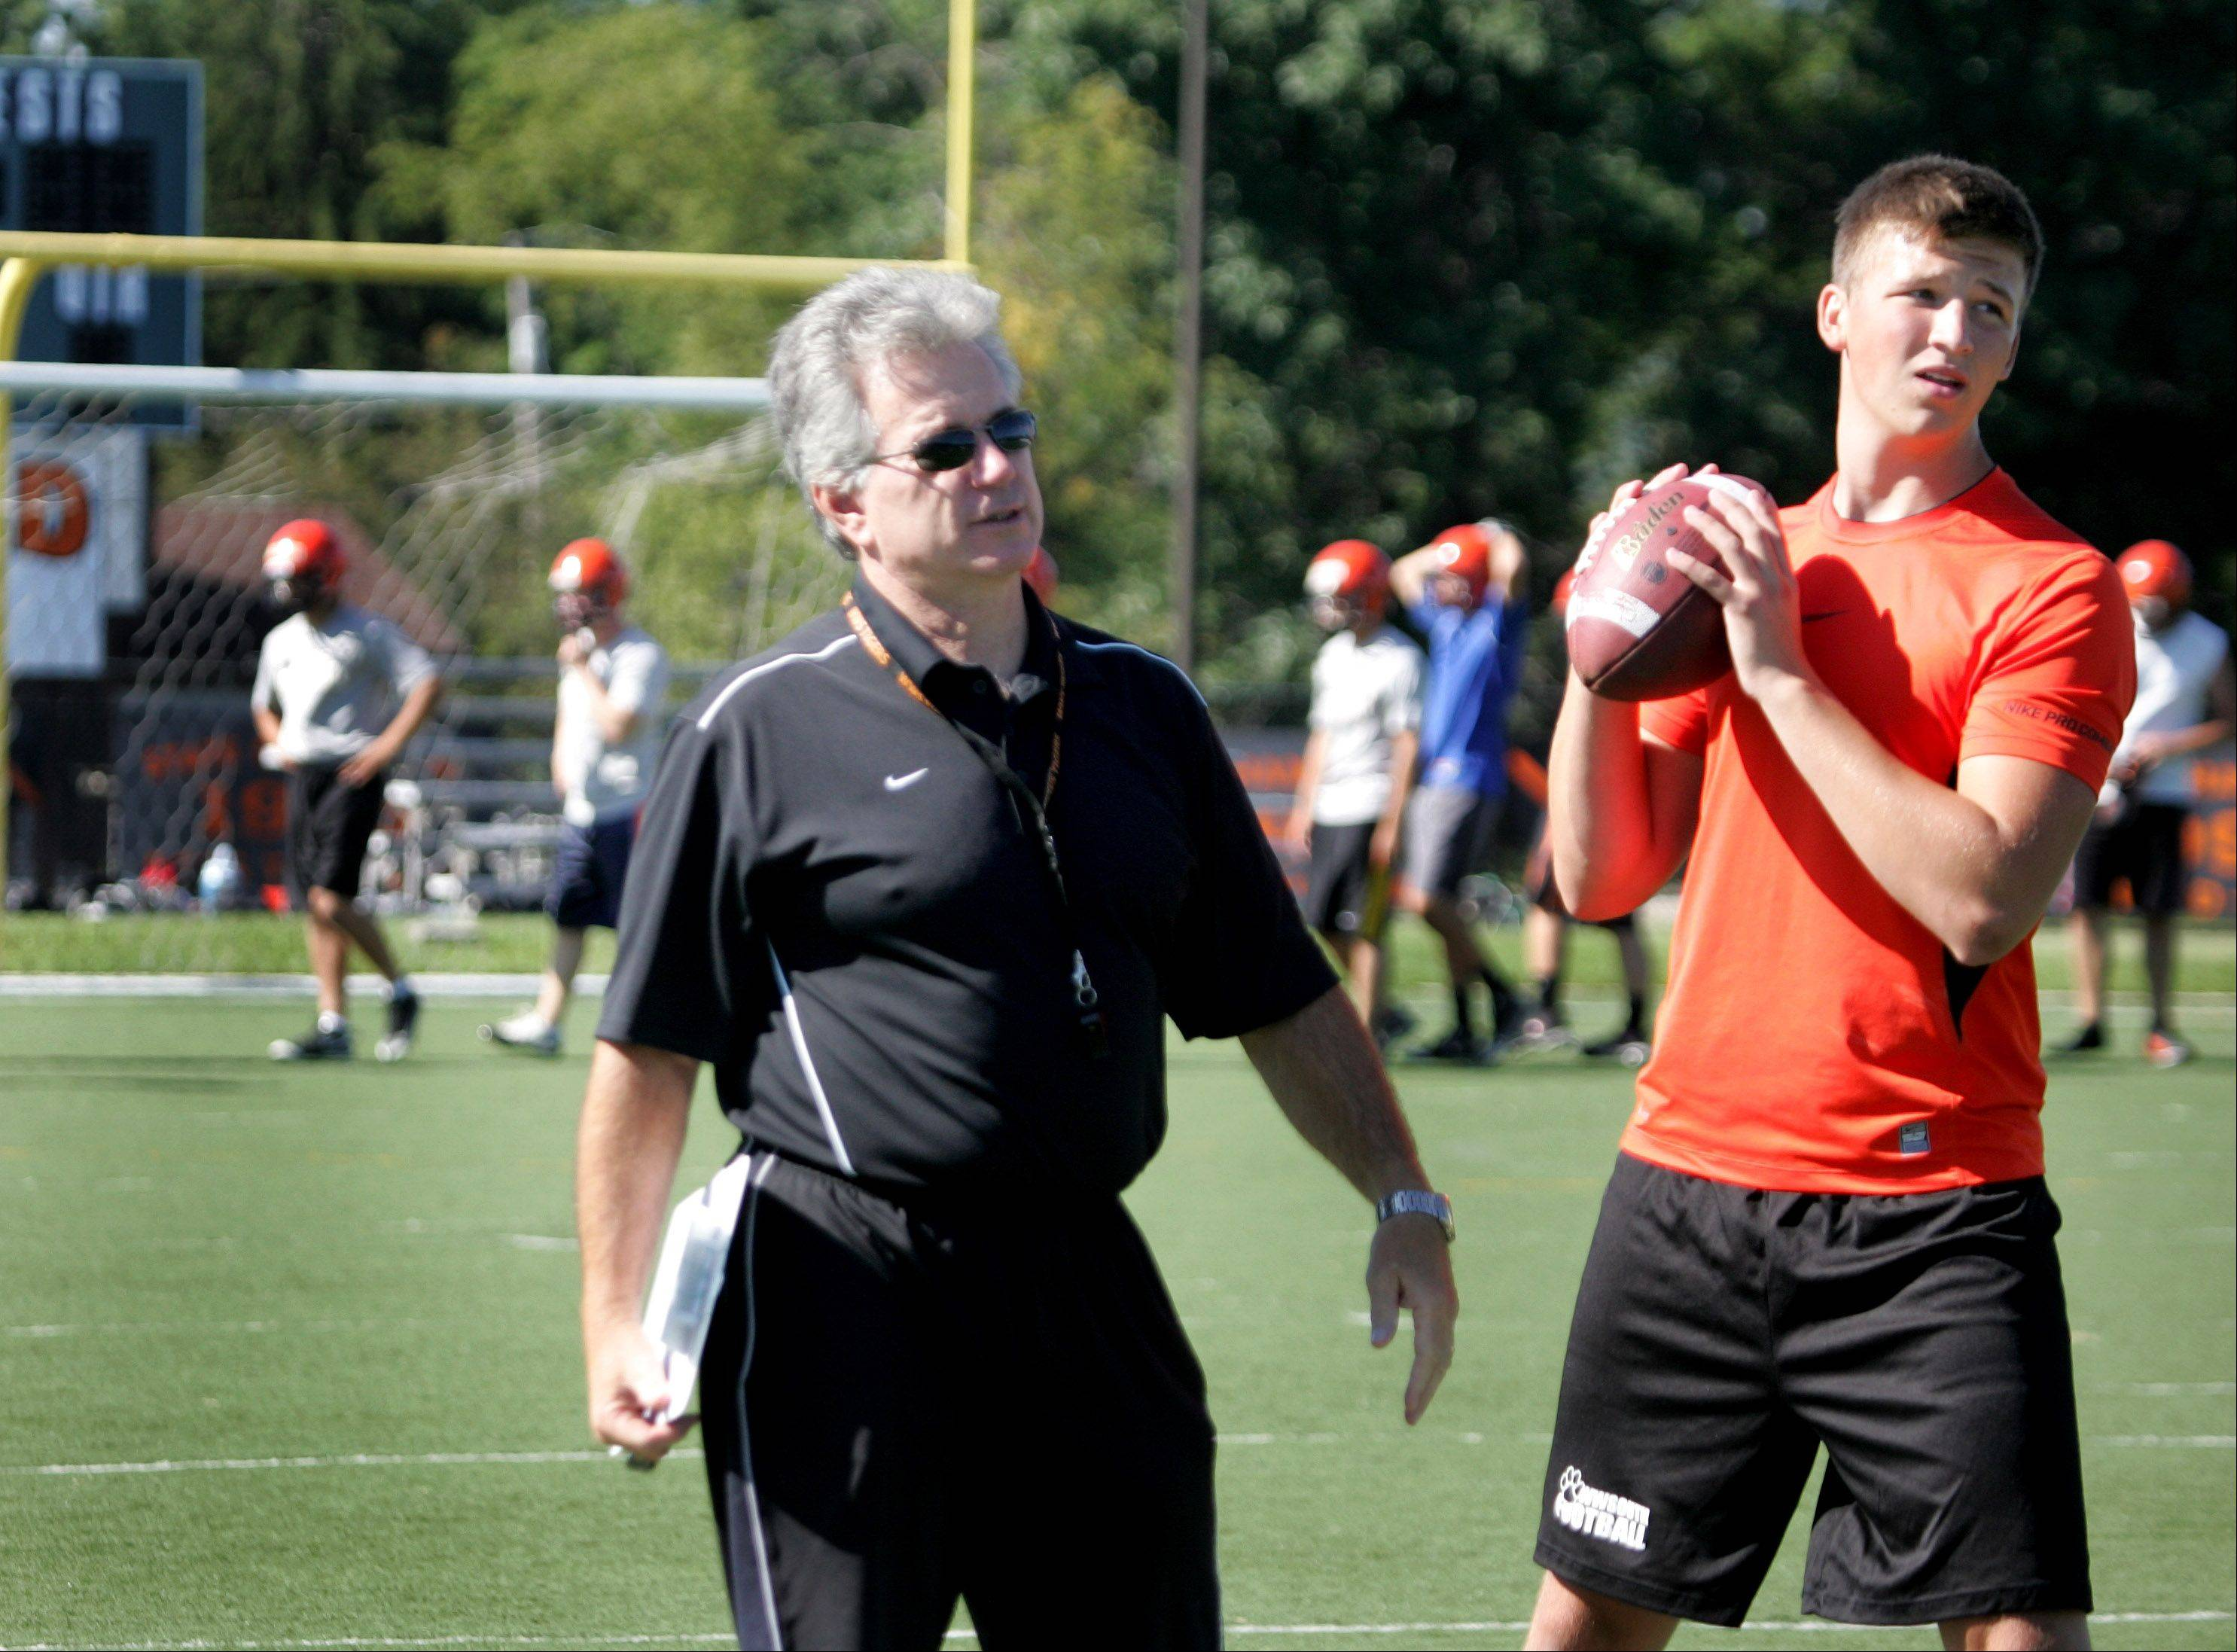 Wheaton Warrenville South quarterback Thaddeus Armstrong works out Wednesday on the watchful eye of coach Ron Muhitch.